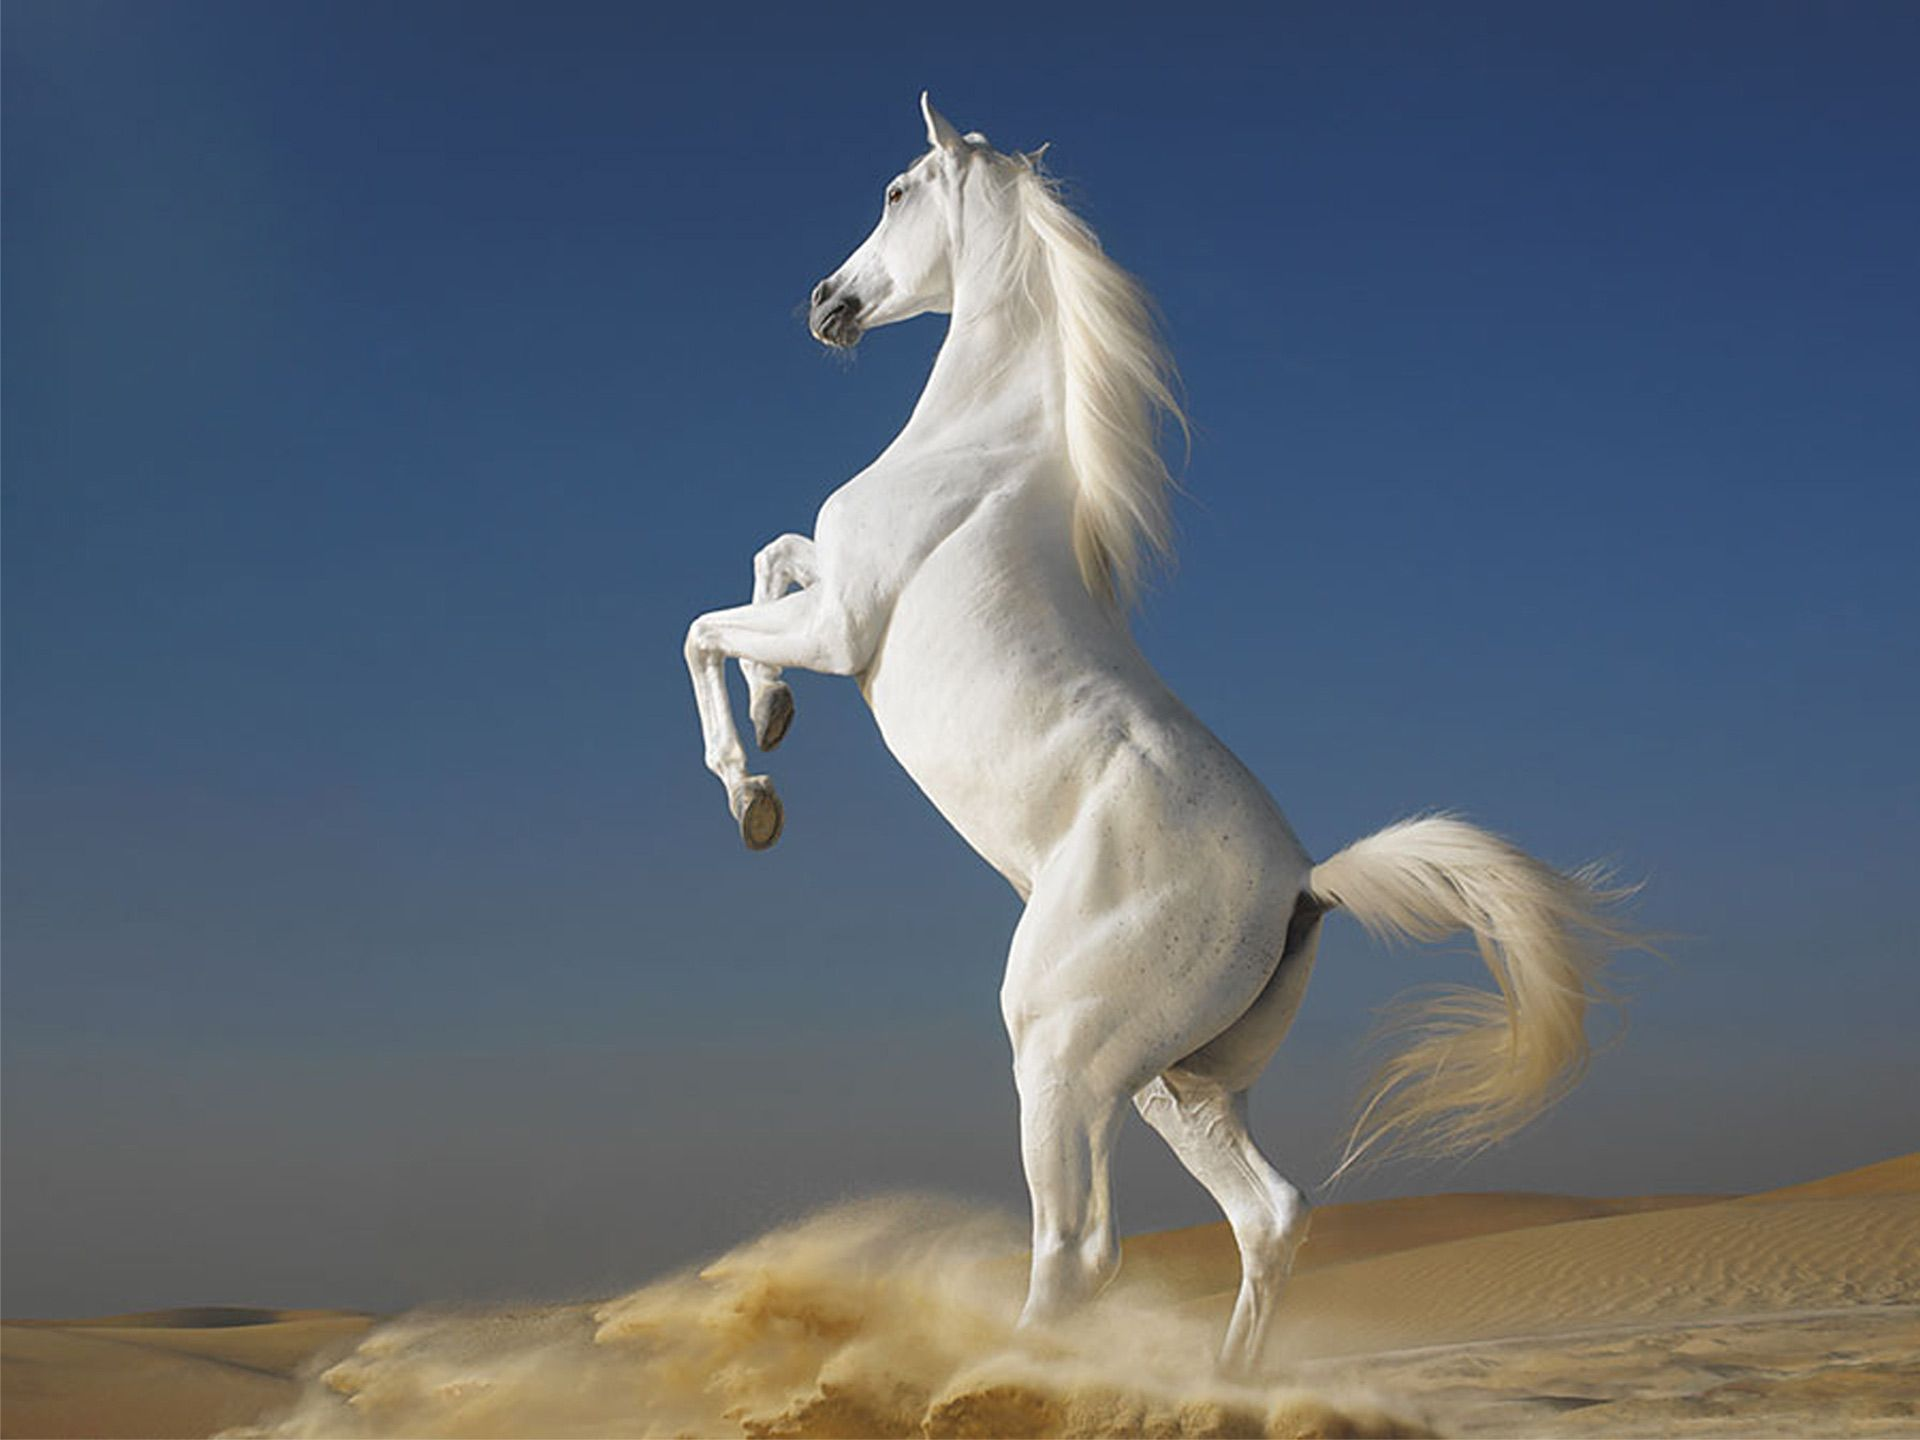 White Horse Best Computer Backgrounds Desktop Hd Wallpaper Animaux Beaux Chevaux Sauvages Image Animaux